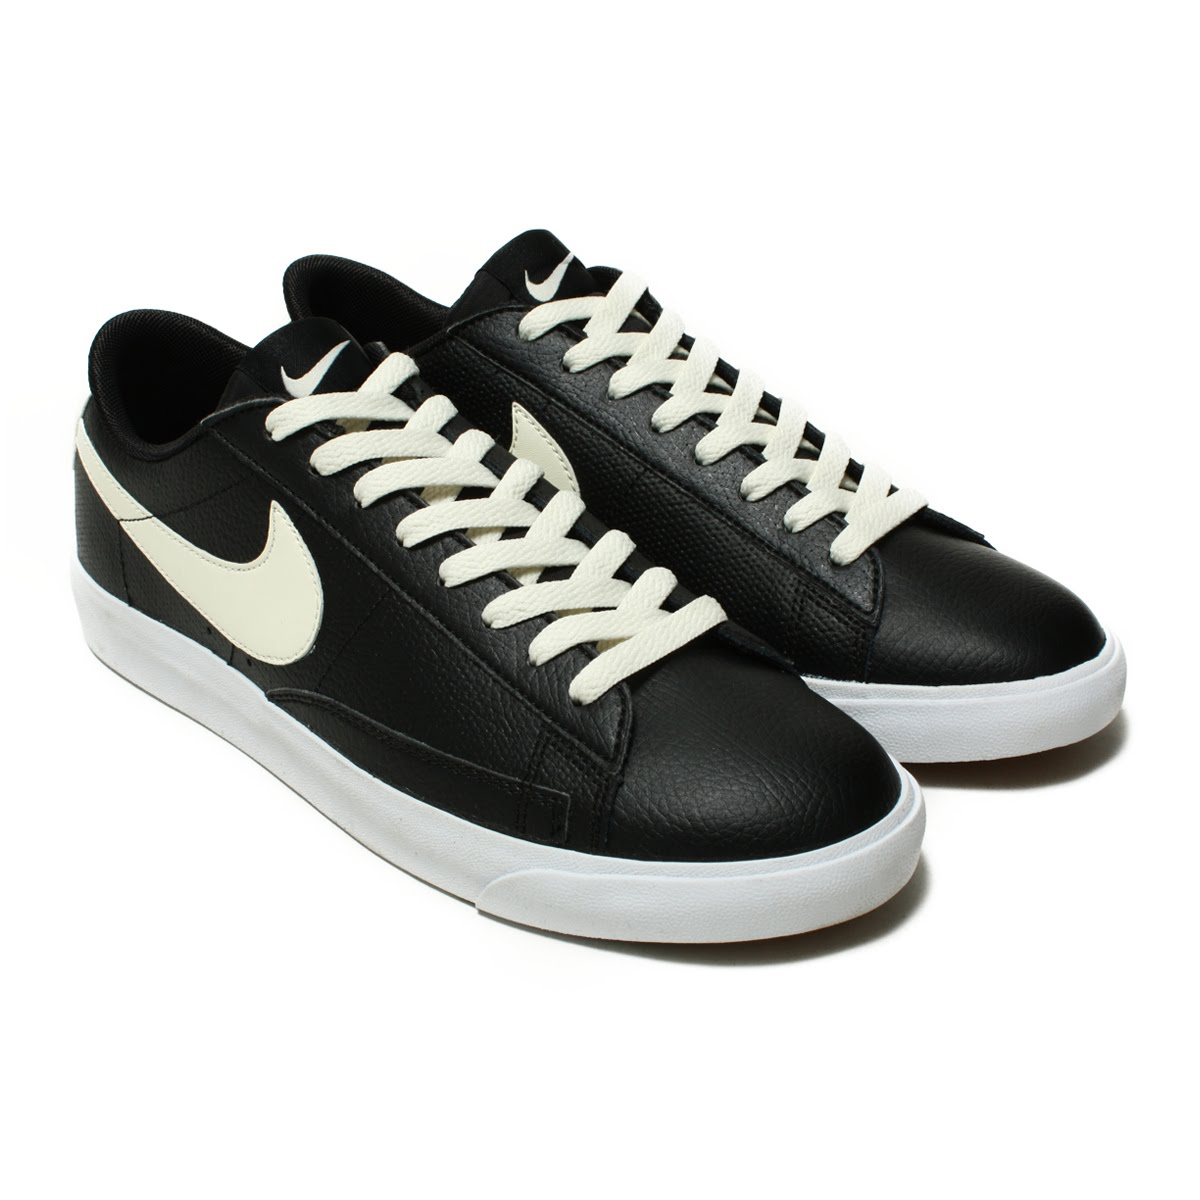 393d264d71c The design which is Aiko Nic where I finished the Nike blazer Lorre semen  shoes with upper of all leather. The autoclave structure lets mid sole and  out ...